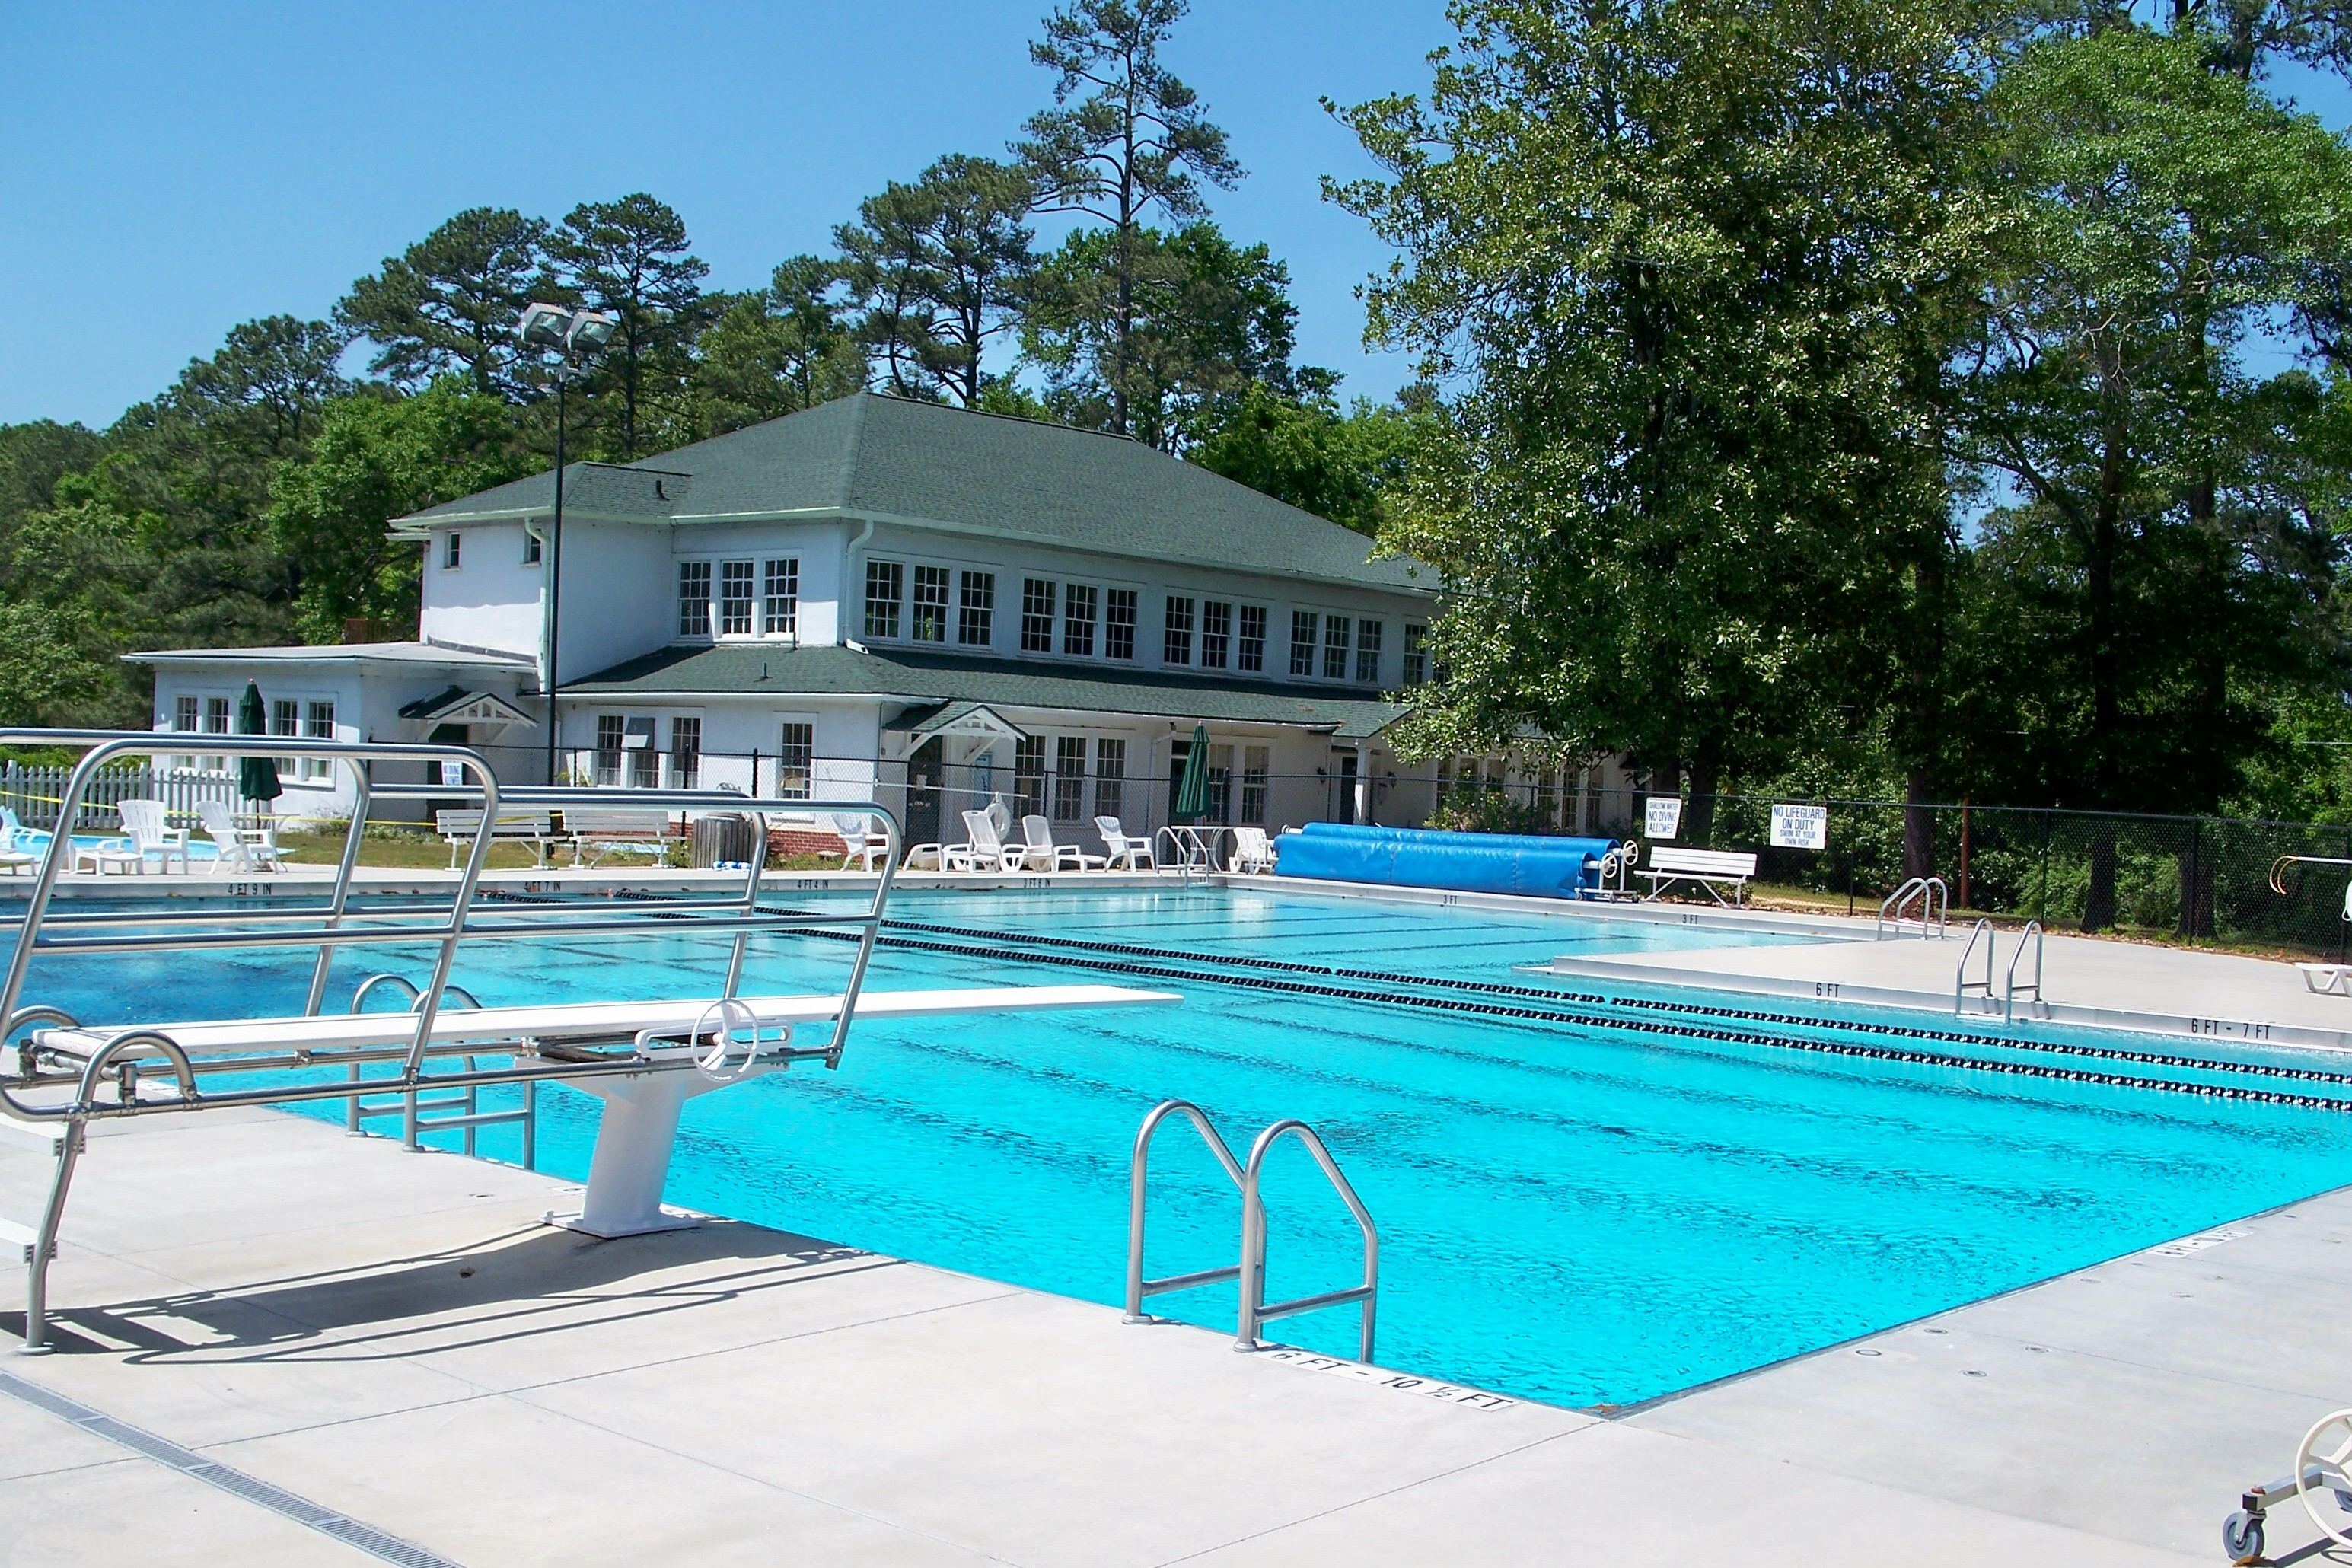 Fermata Pool and Club House